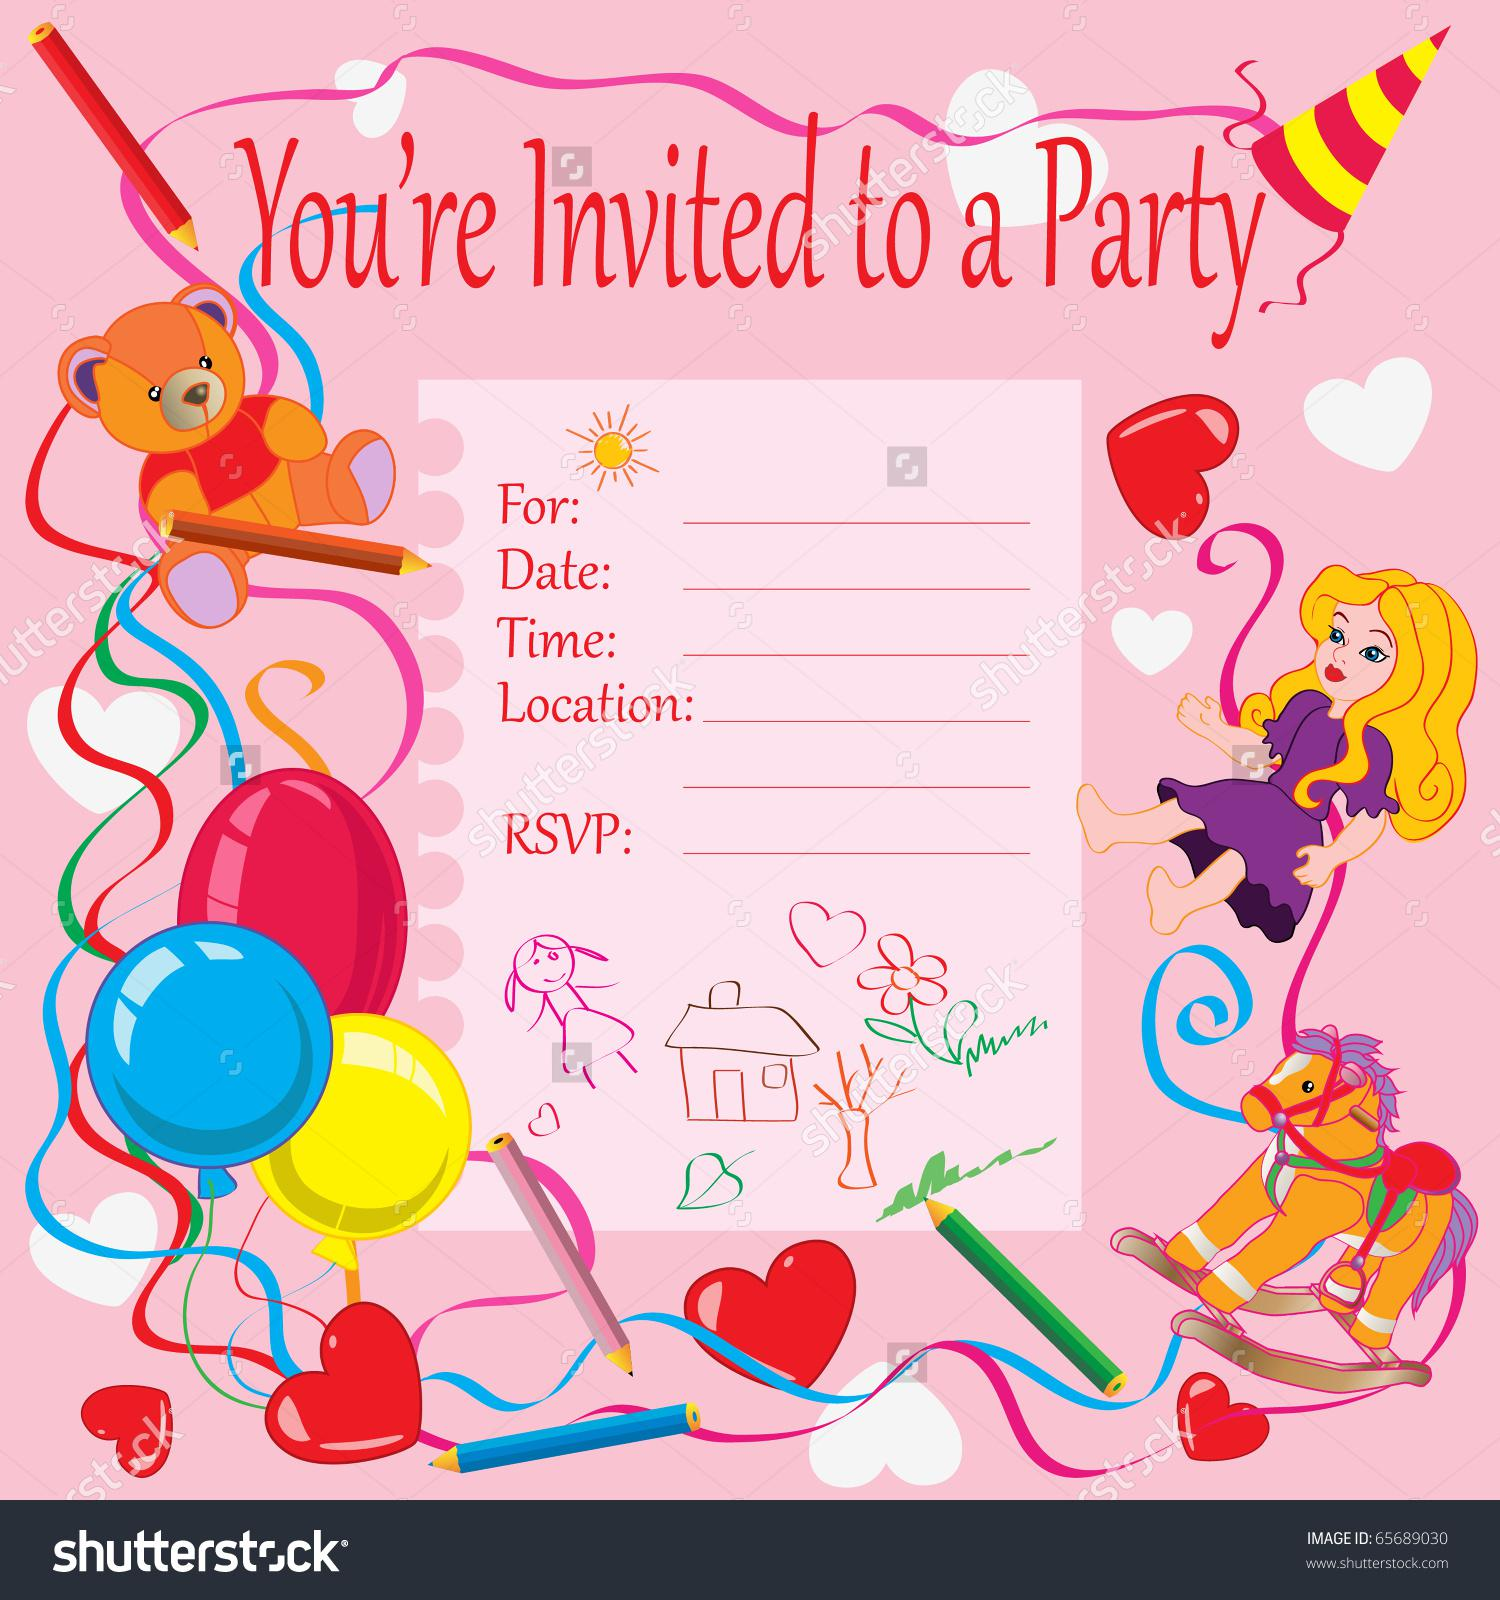 4 Step Make Your Own Birthday Invitations Free Sample Printable – Free Kids Birthday Invites